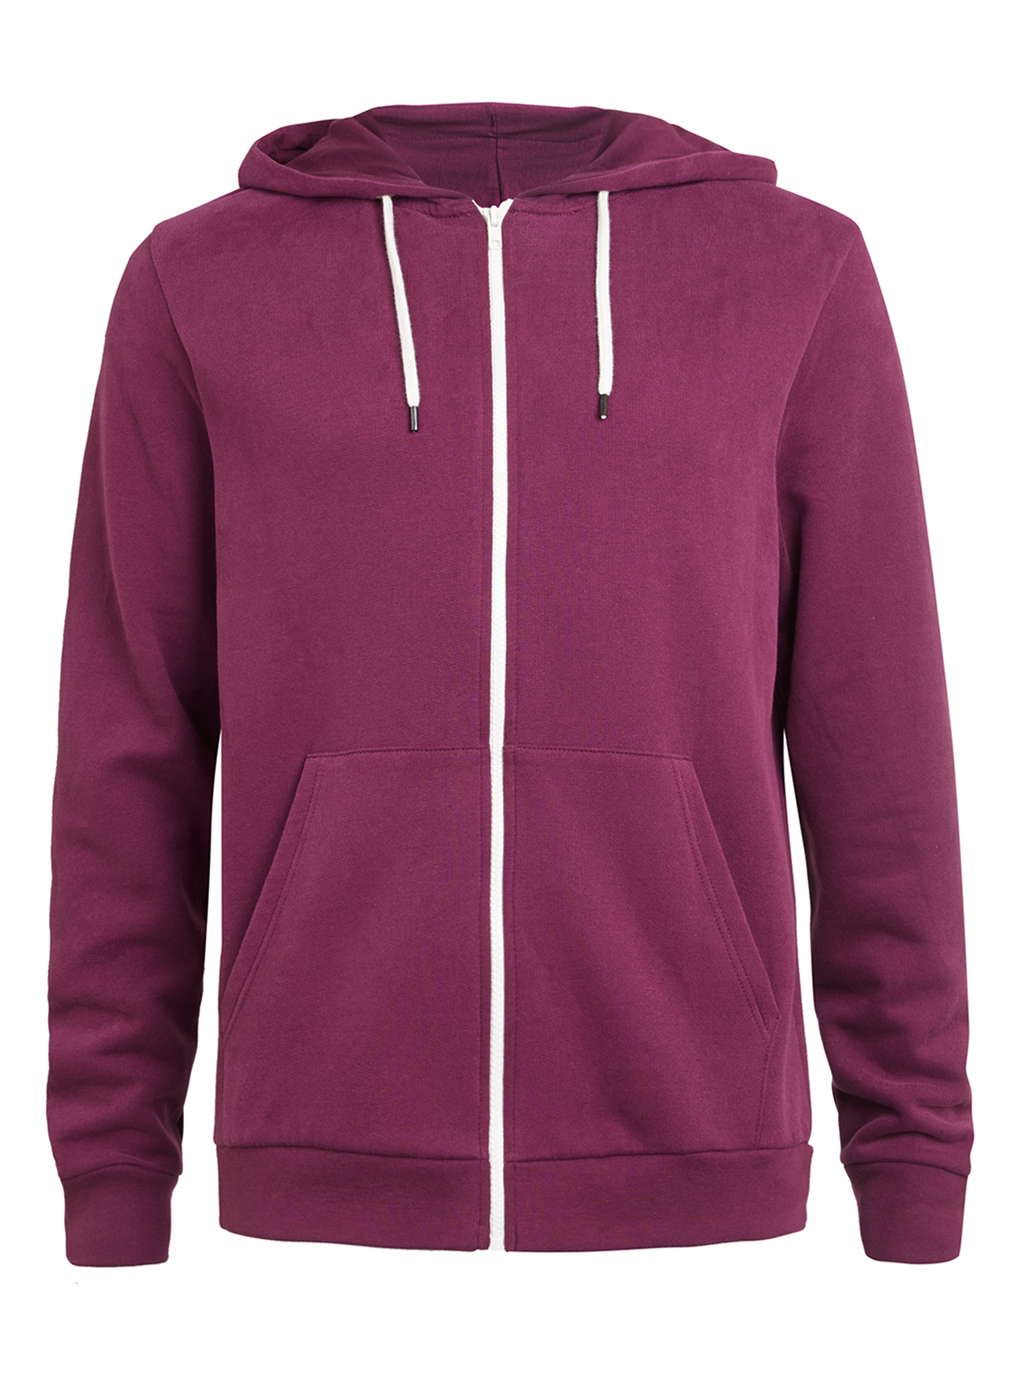 Find great deals on eBay for purple hoodie mens. Shop with confidence.